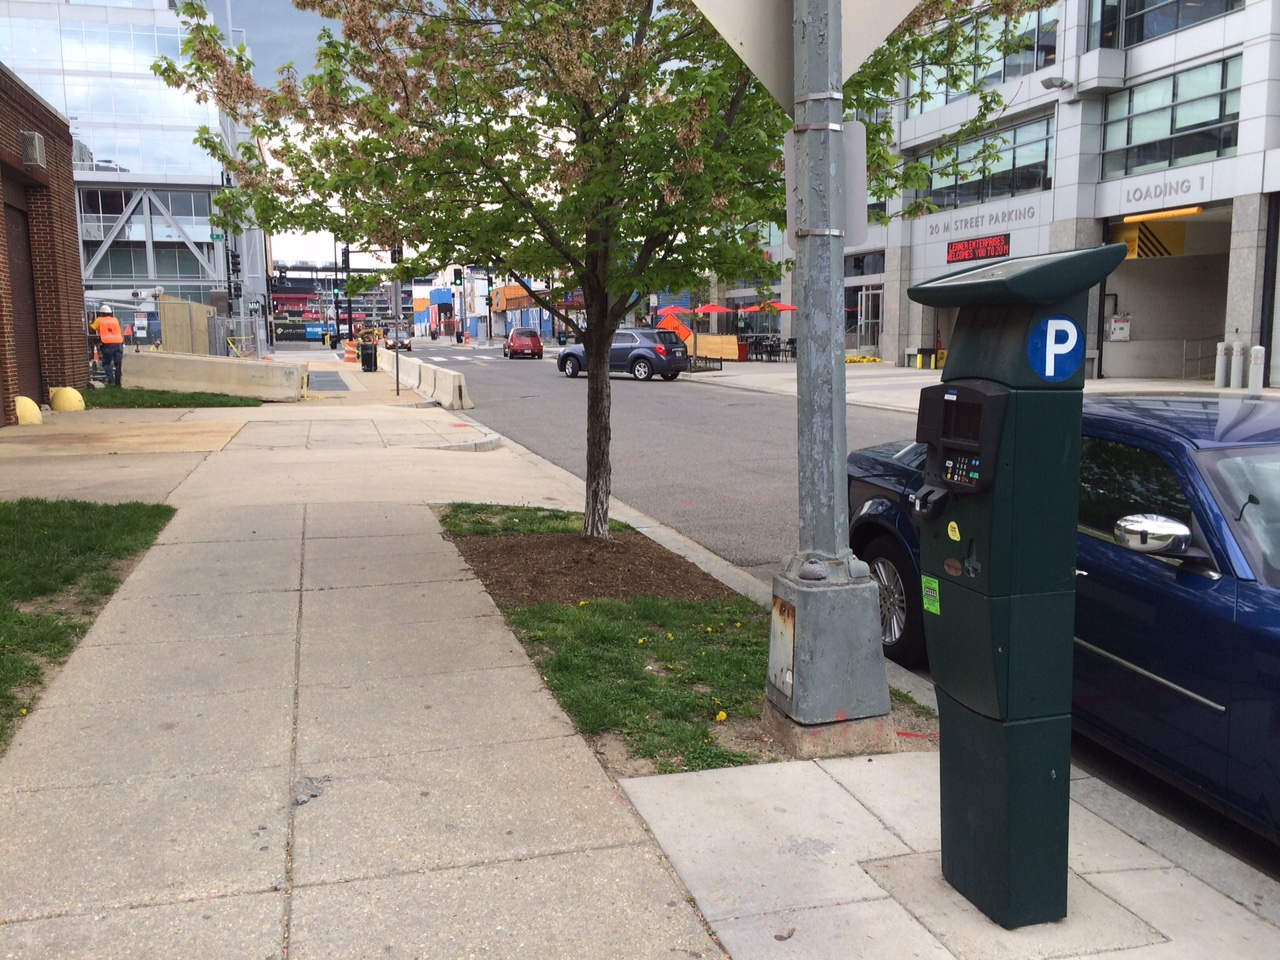 Parking tickets near Nationals Park overturned upon further review